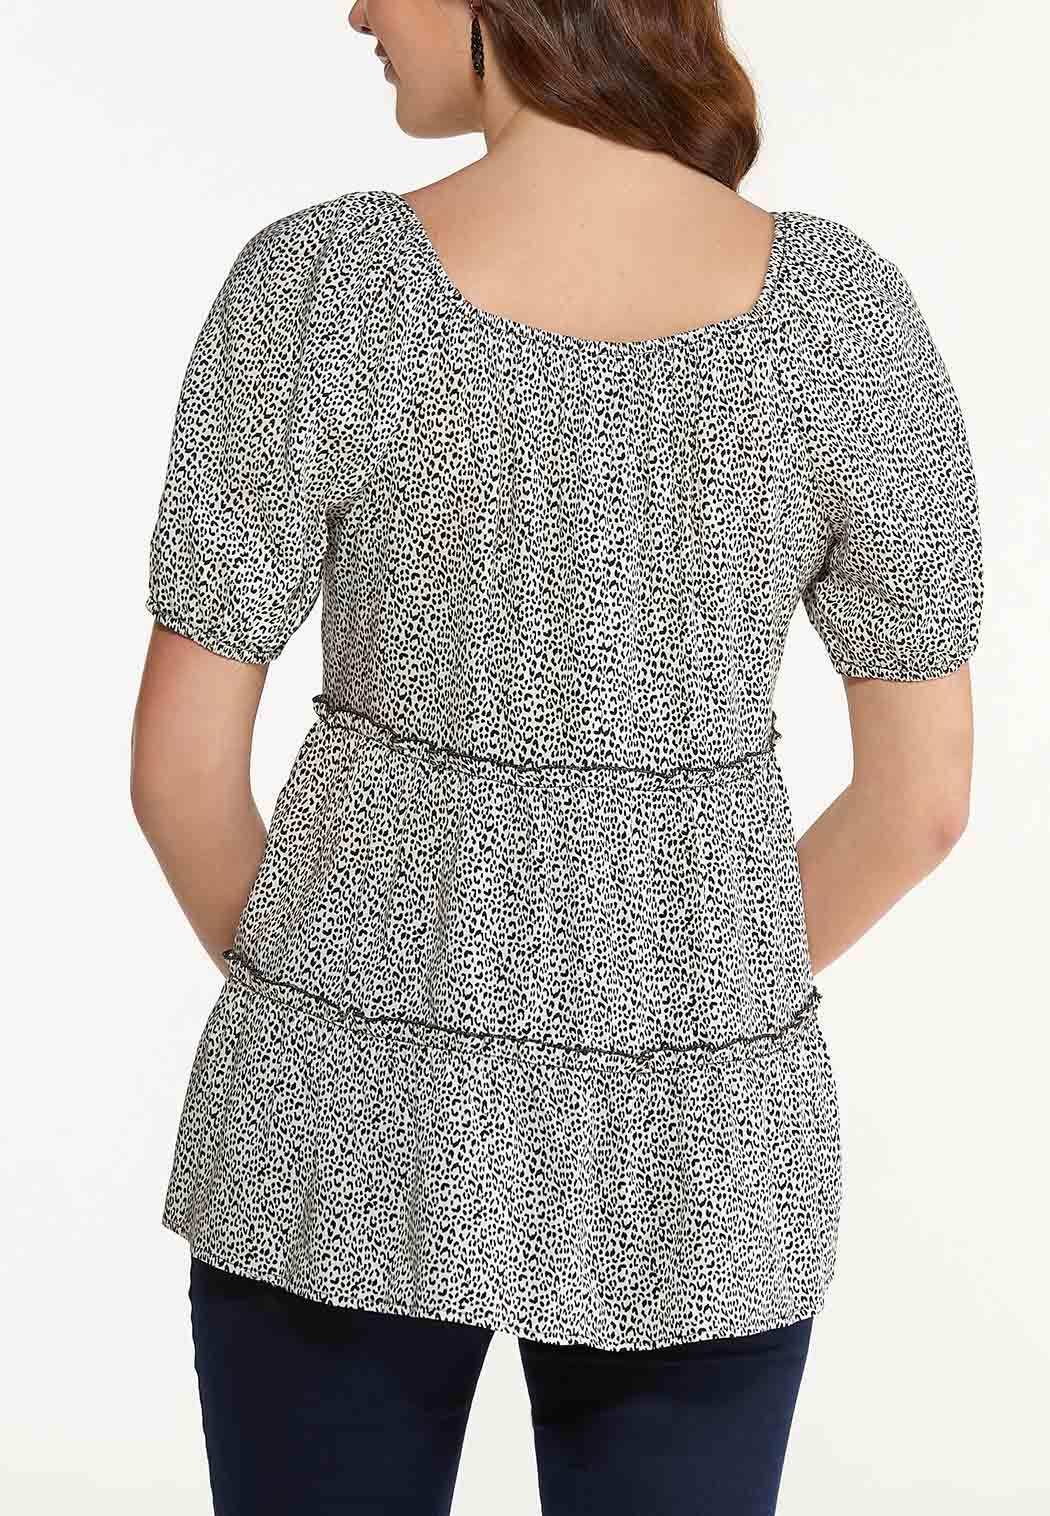 Plus Size Wildly Chic Babydoll Top (Item #44530300)